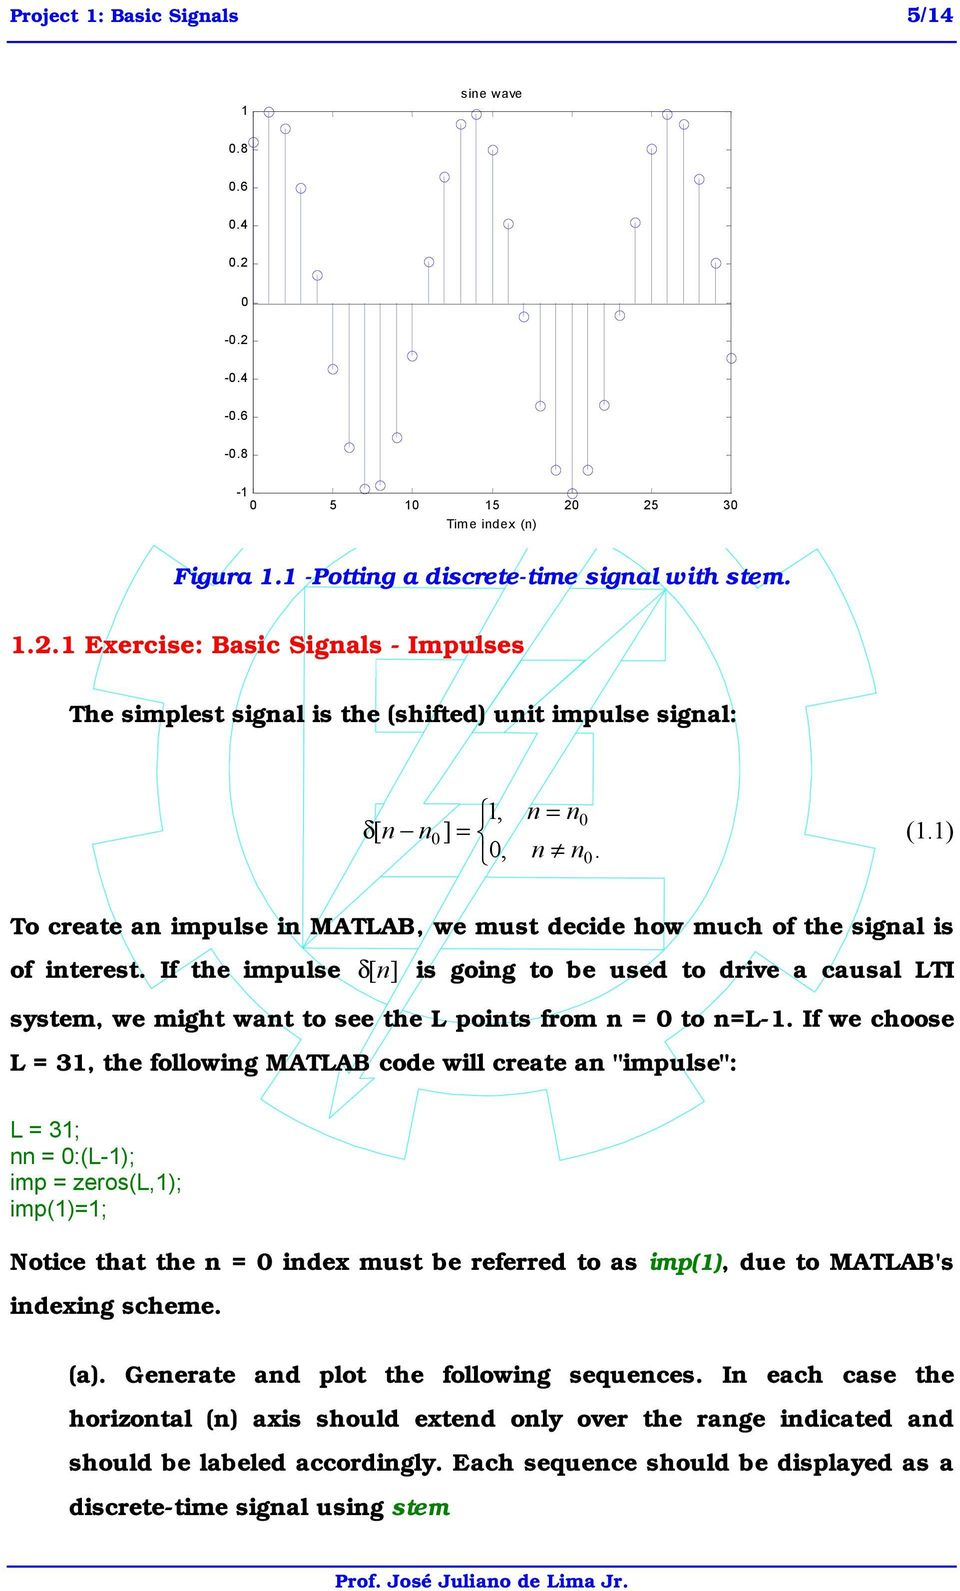 If the impulse δ [ is goig to be used to drive a causal LTI system, we might wat to see the L poits from = 0 to =L-1.